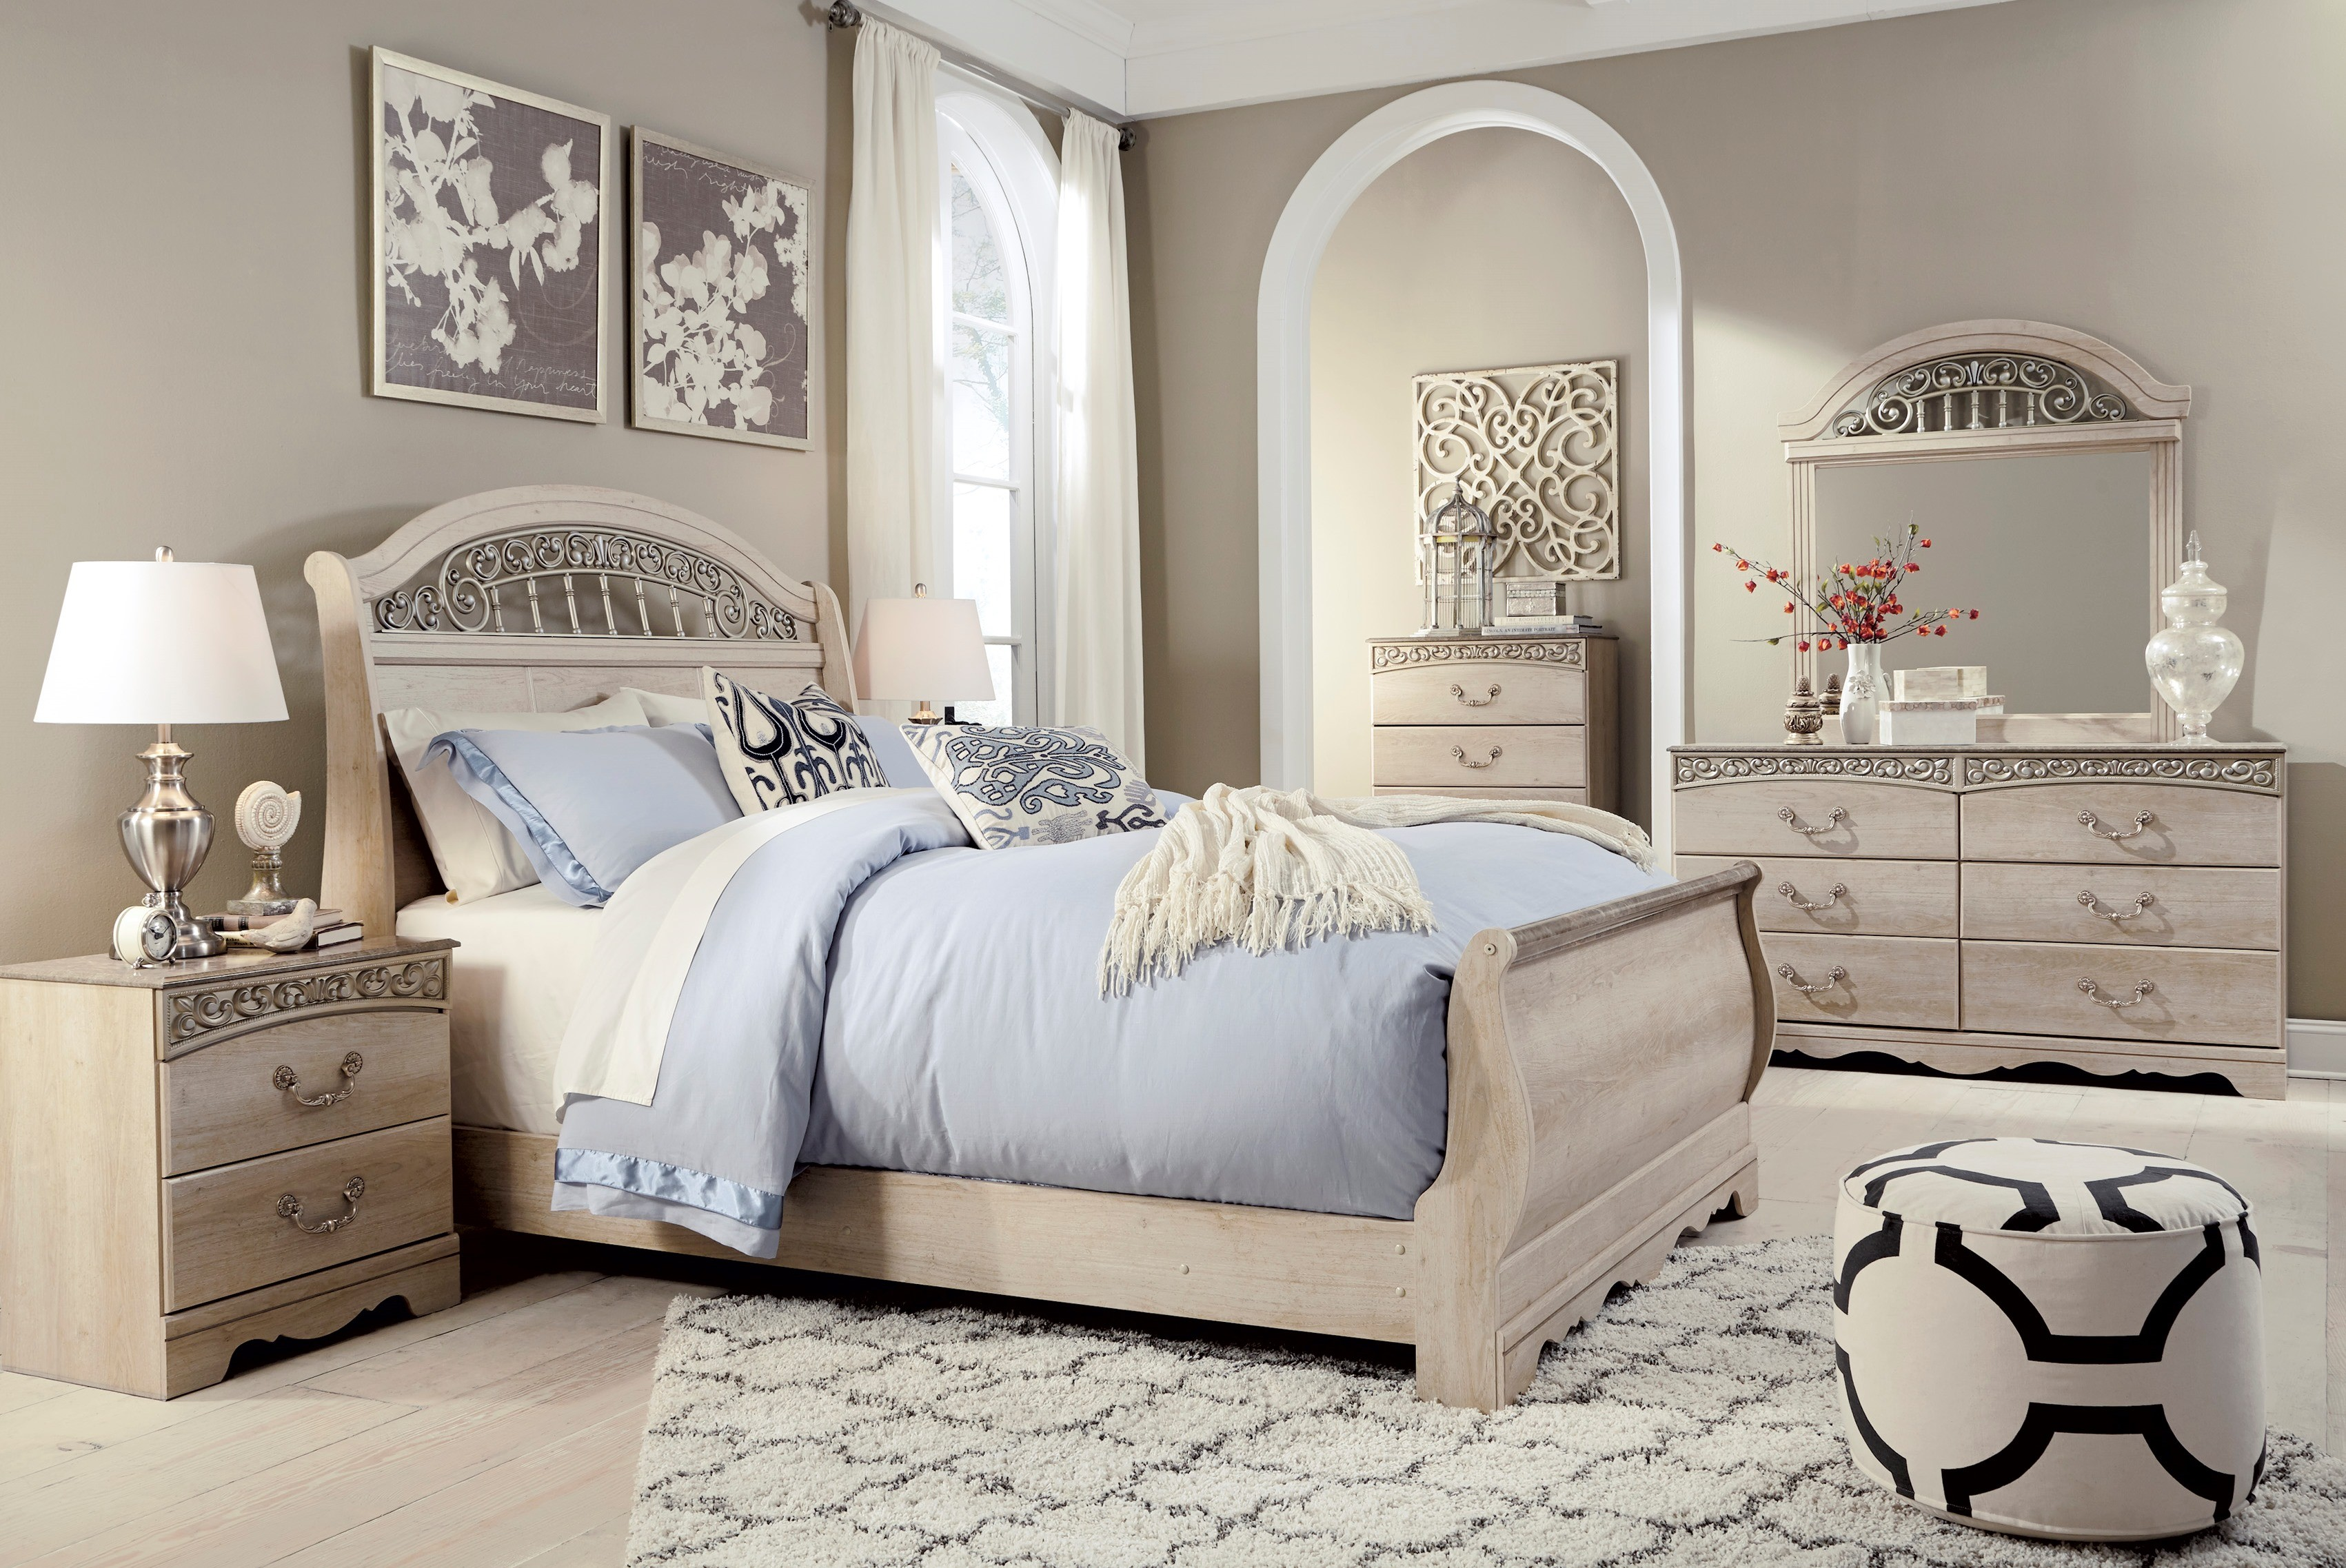 Signature design by ashley catalina sleigh bedroom set - Ashley furniture pheasant run bedroom set ...